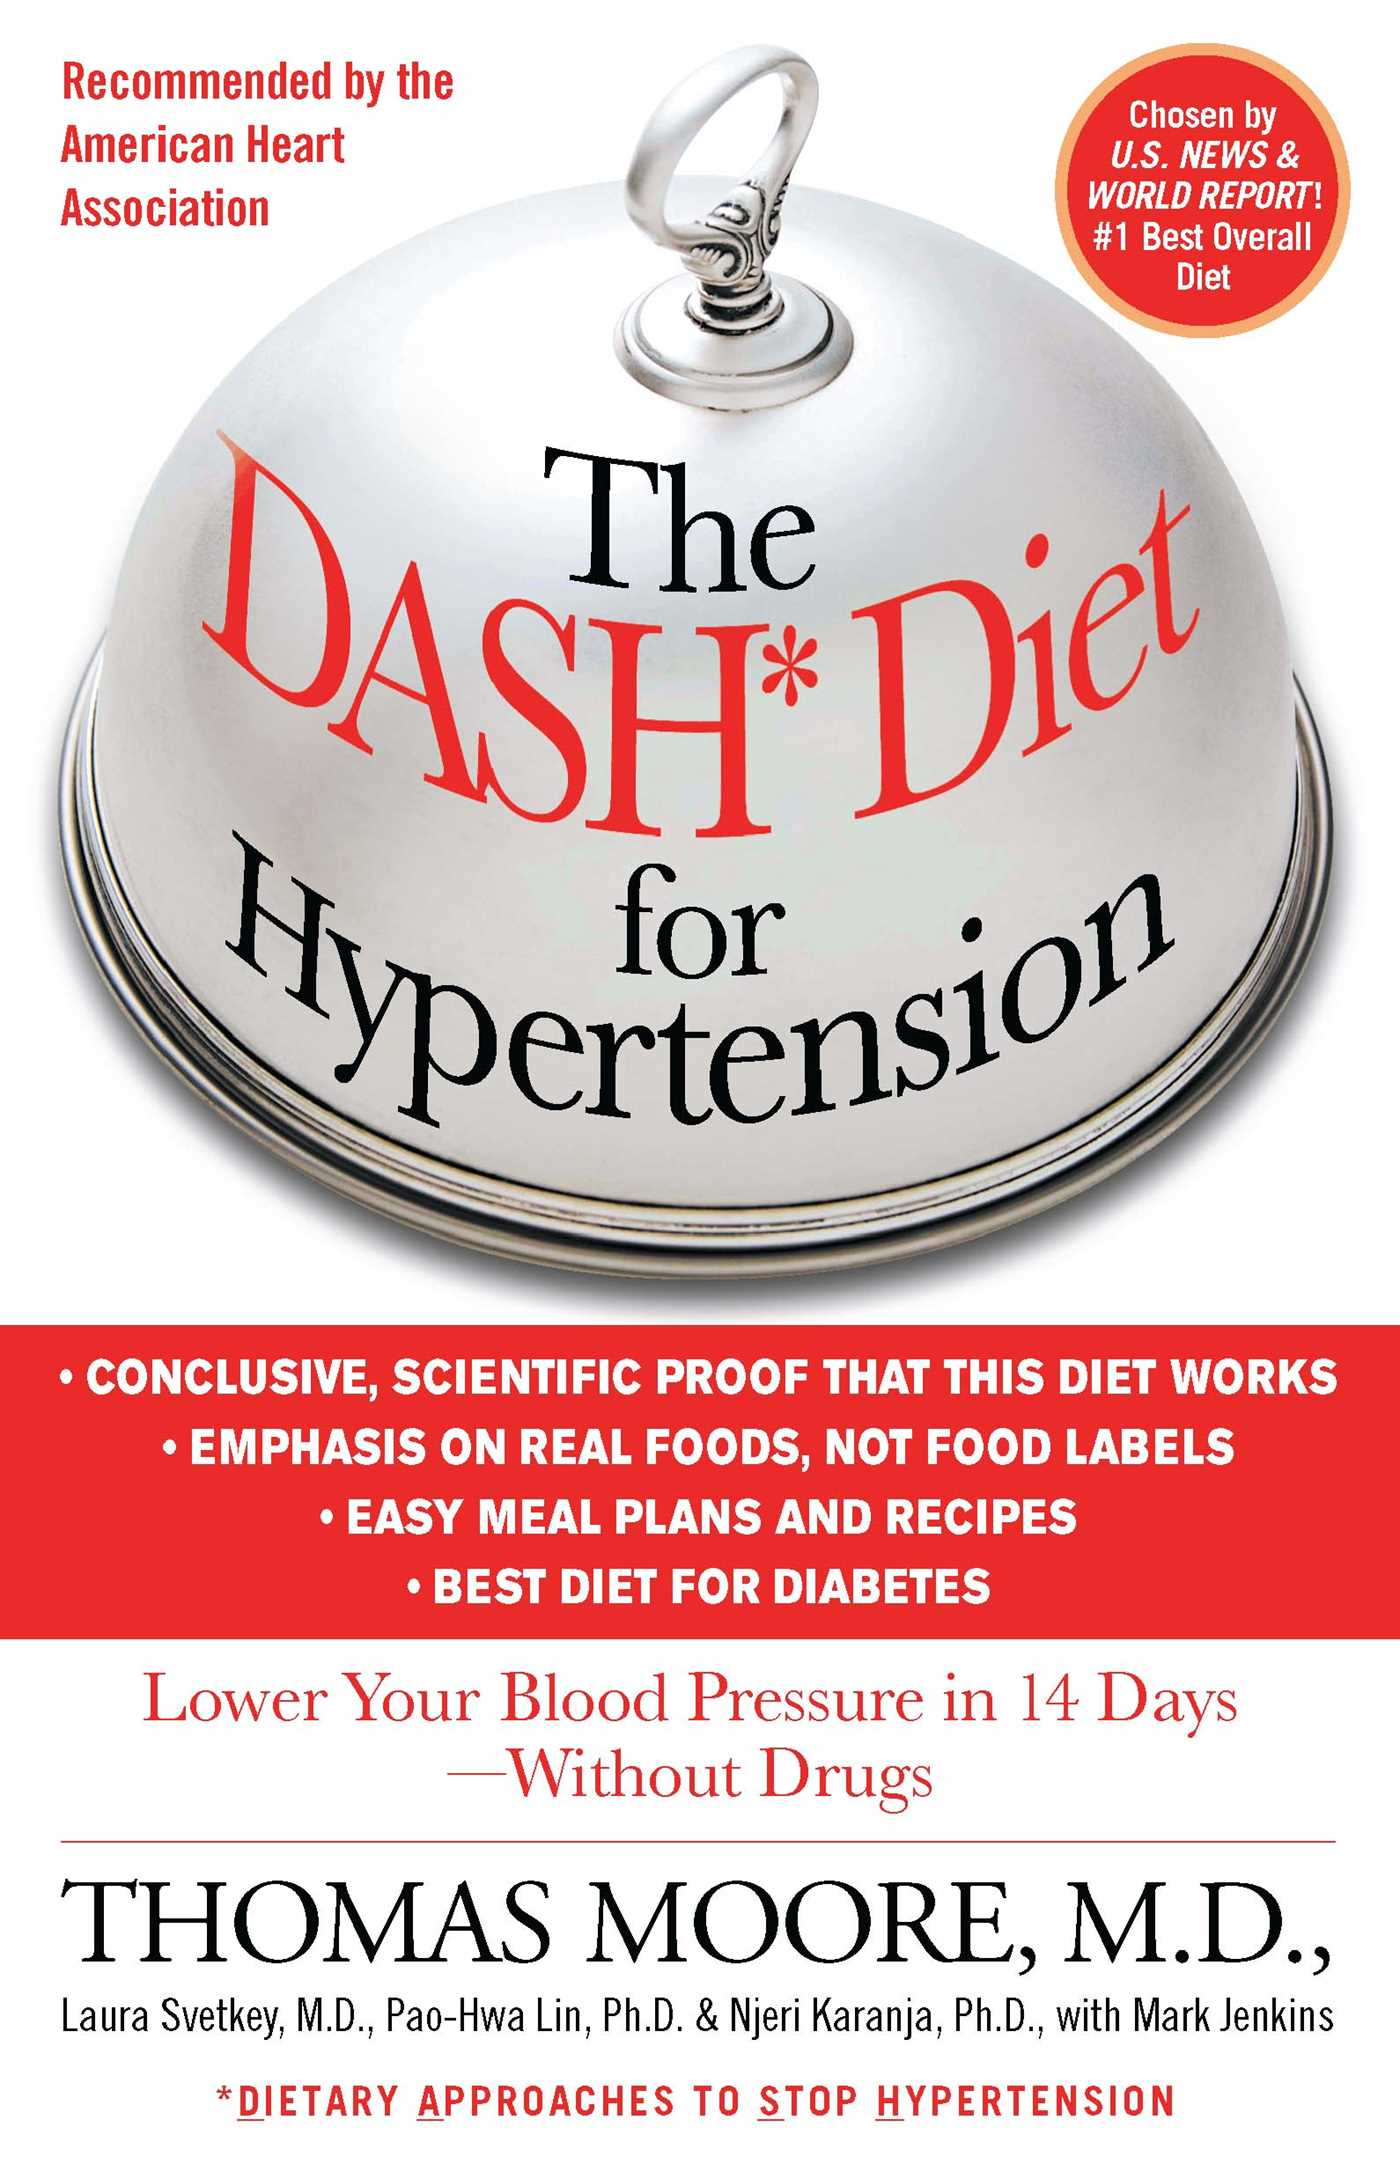 The-dash-diet-for-hypertension-9781451665581_hr